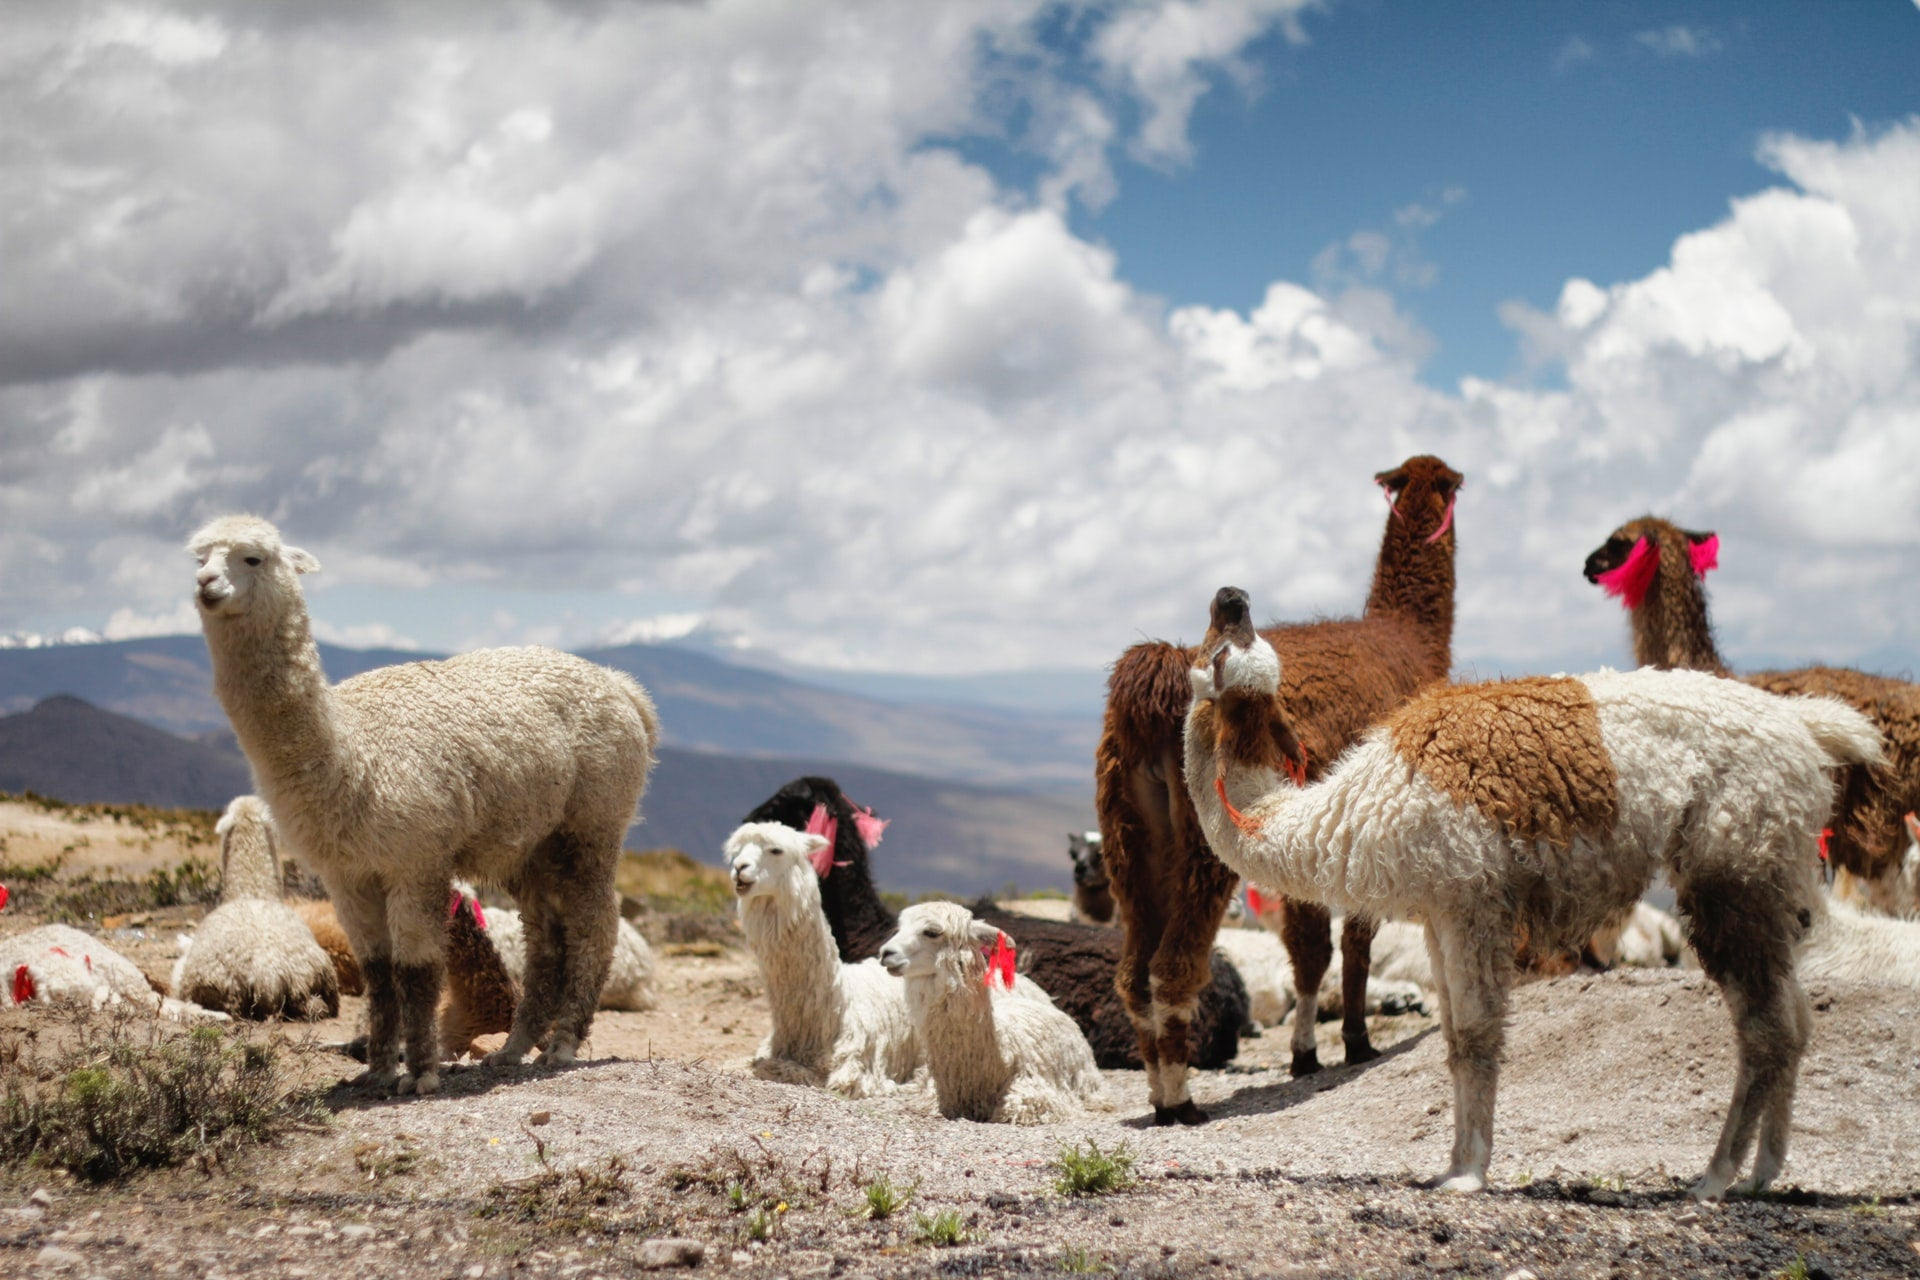 A pack of llamas on top of a canyon in Peru